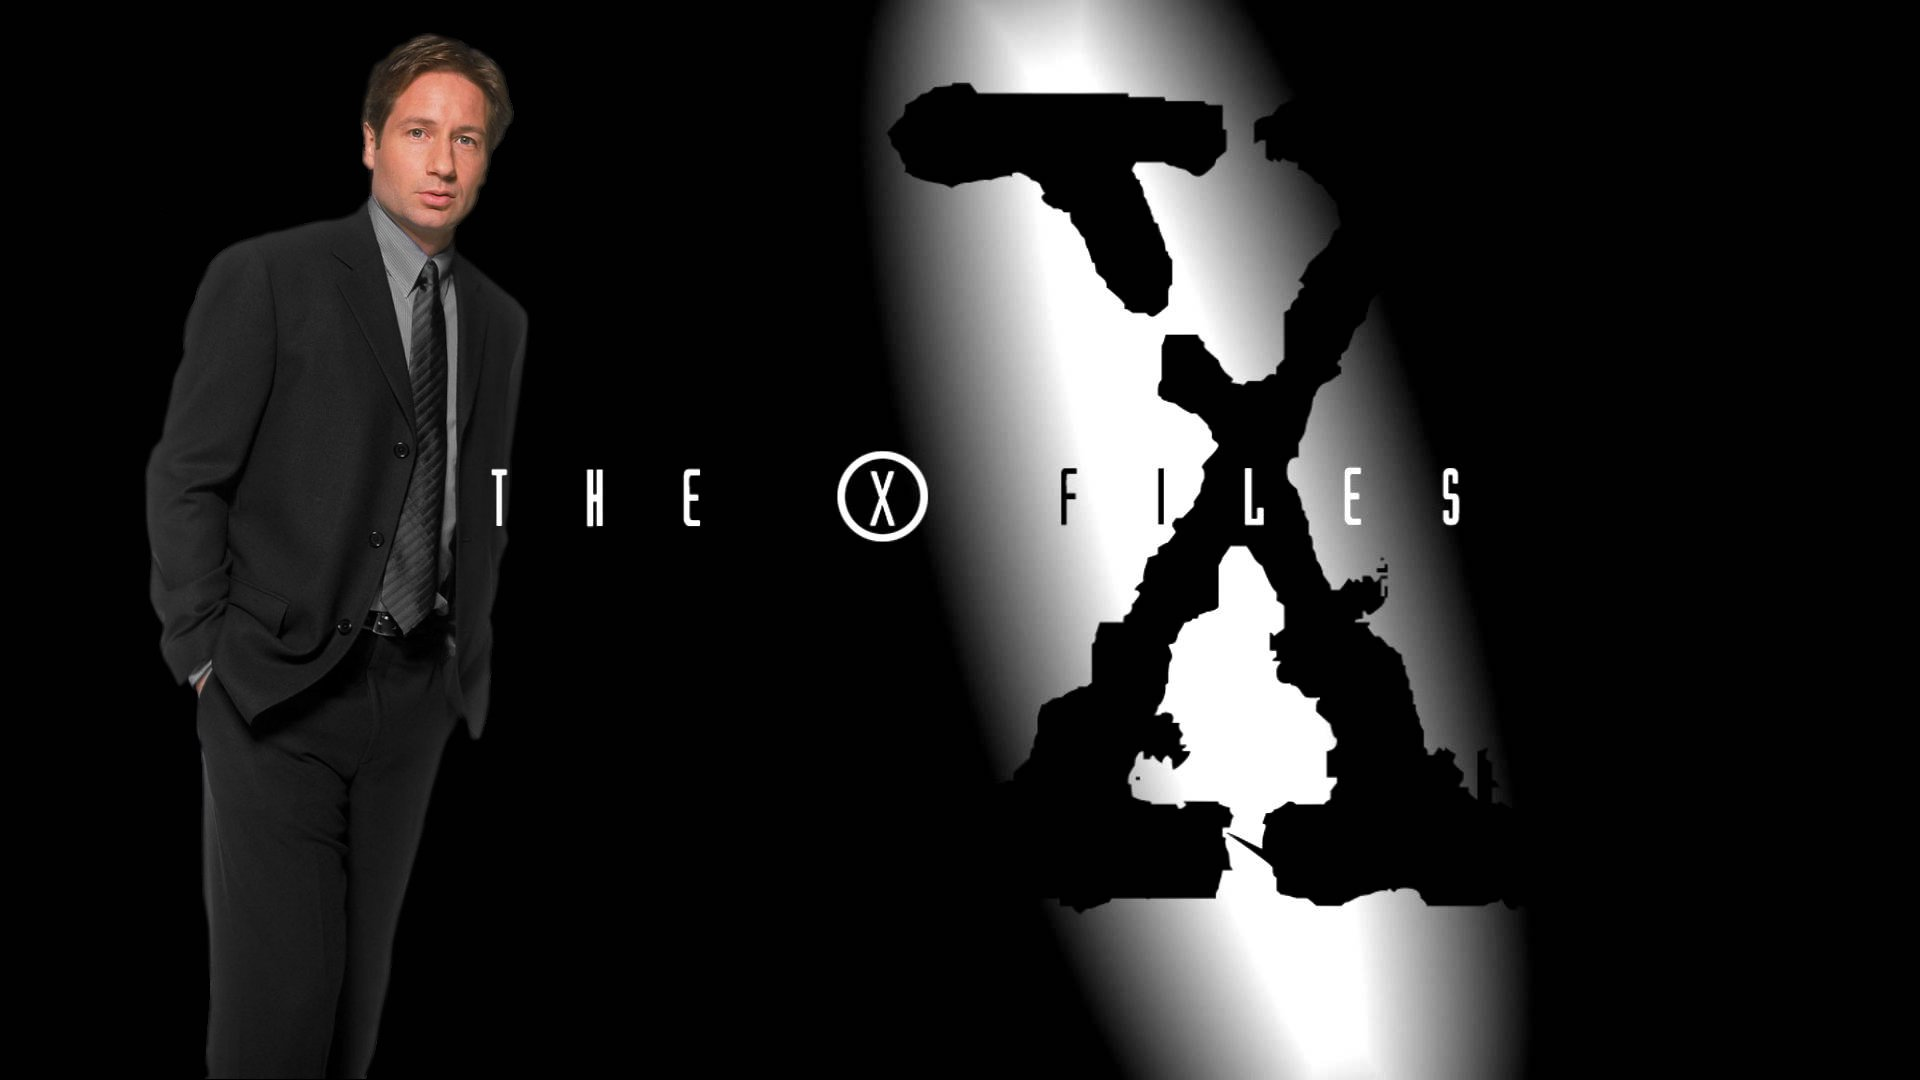 THE X-FILES sci-fi mystery drama television files series